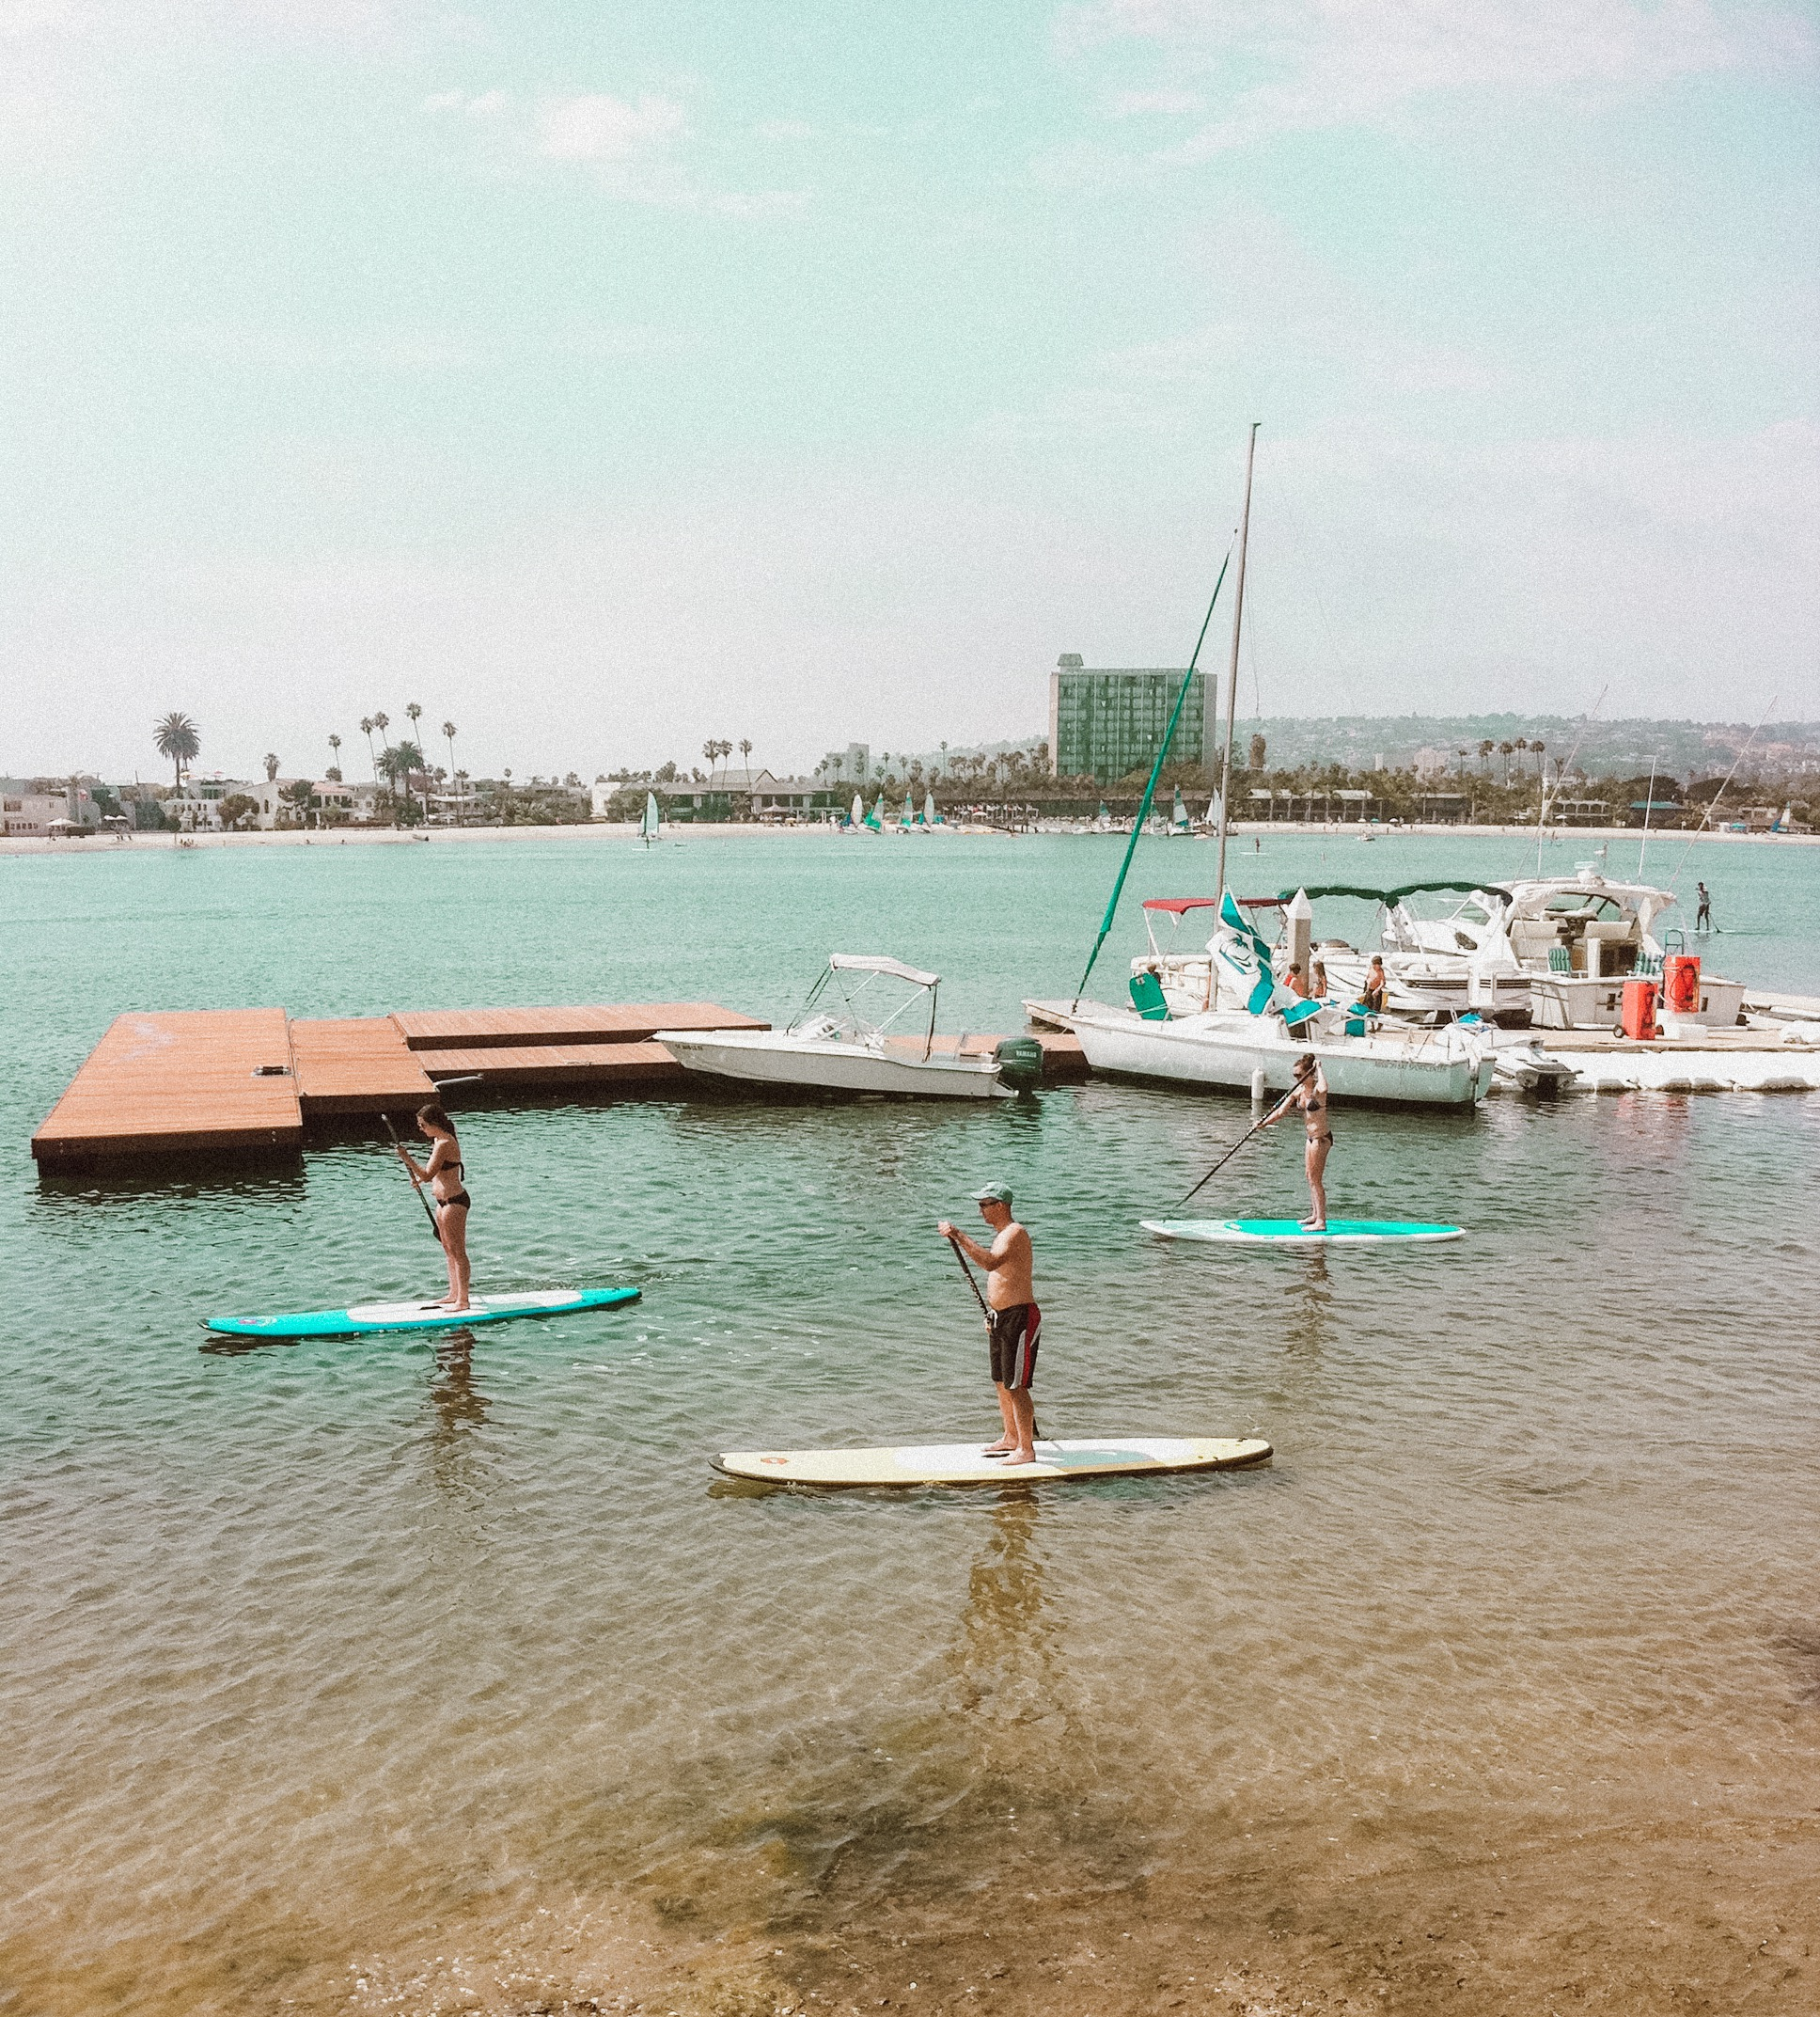 paddle boarding in mission bay san diego